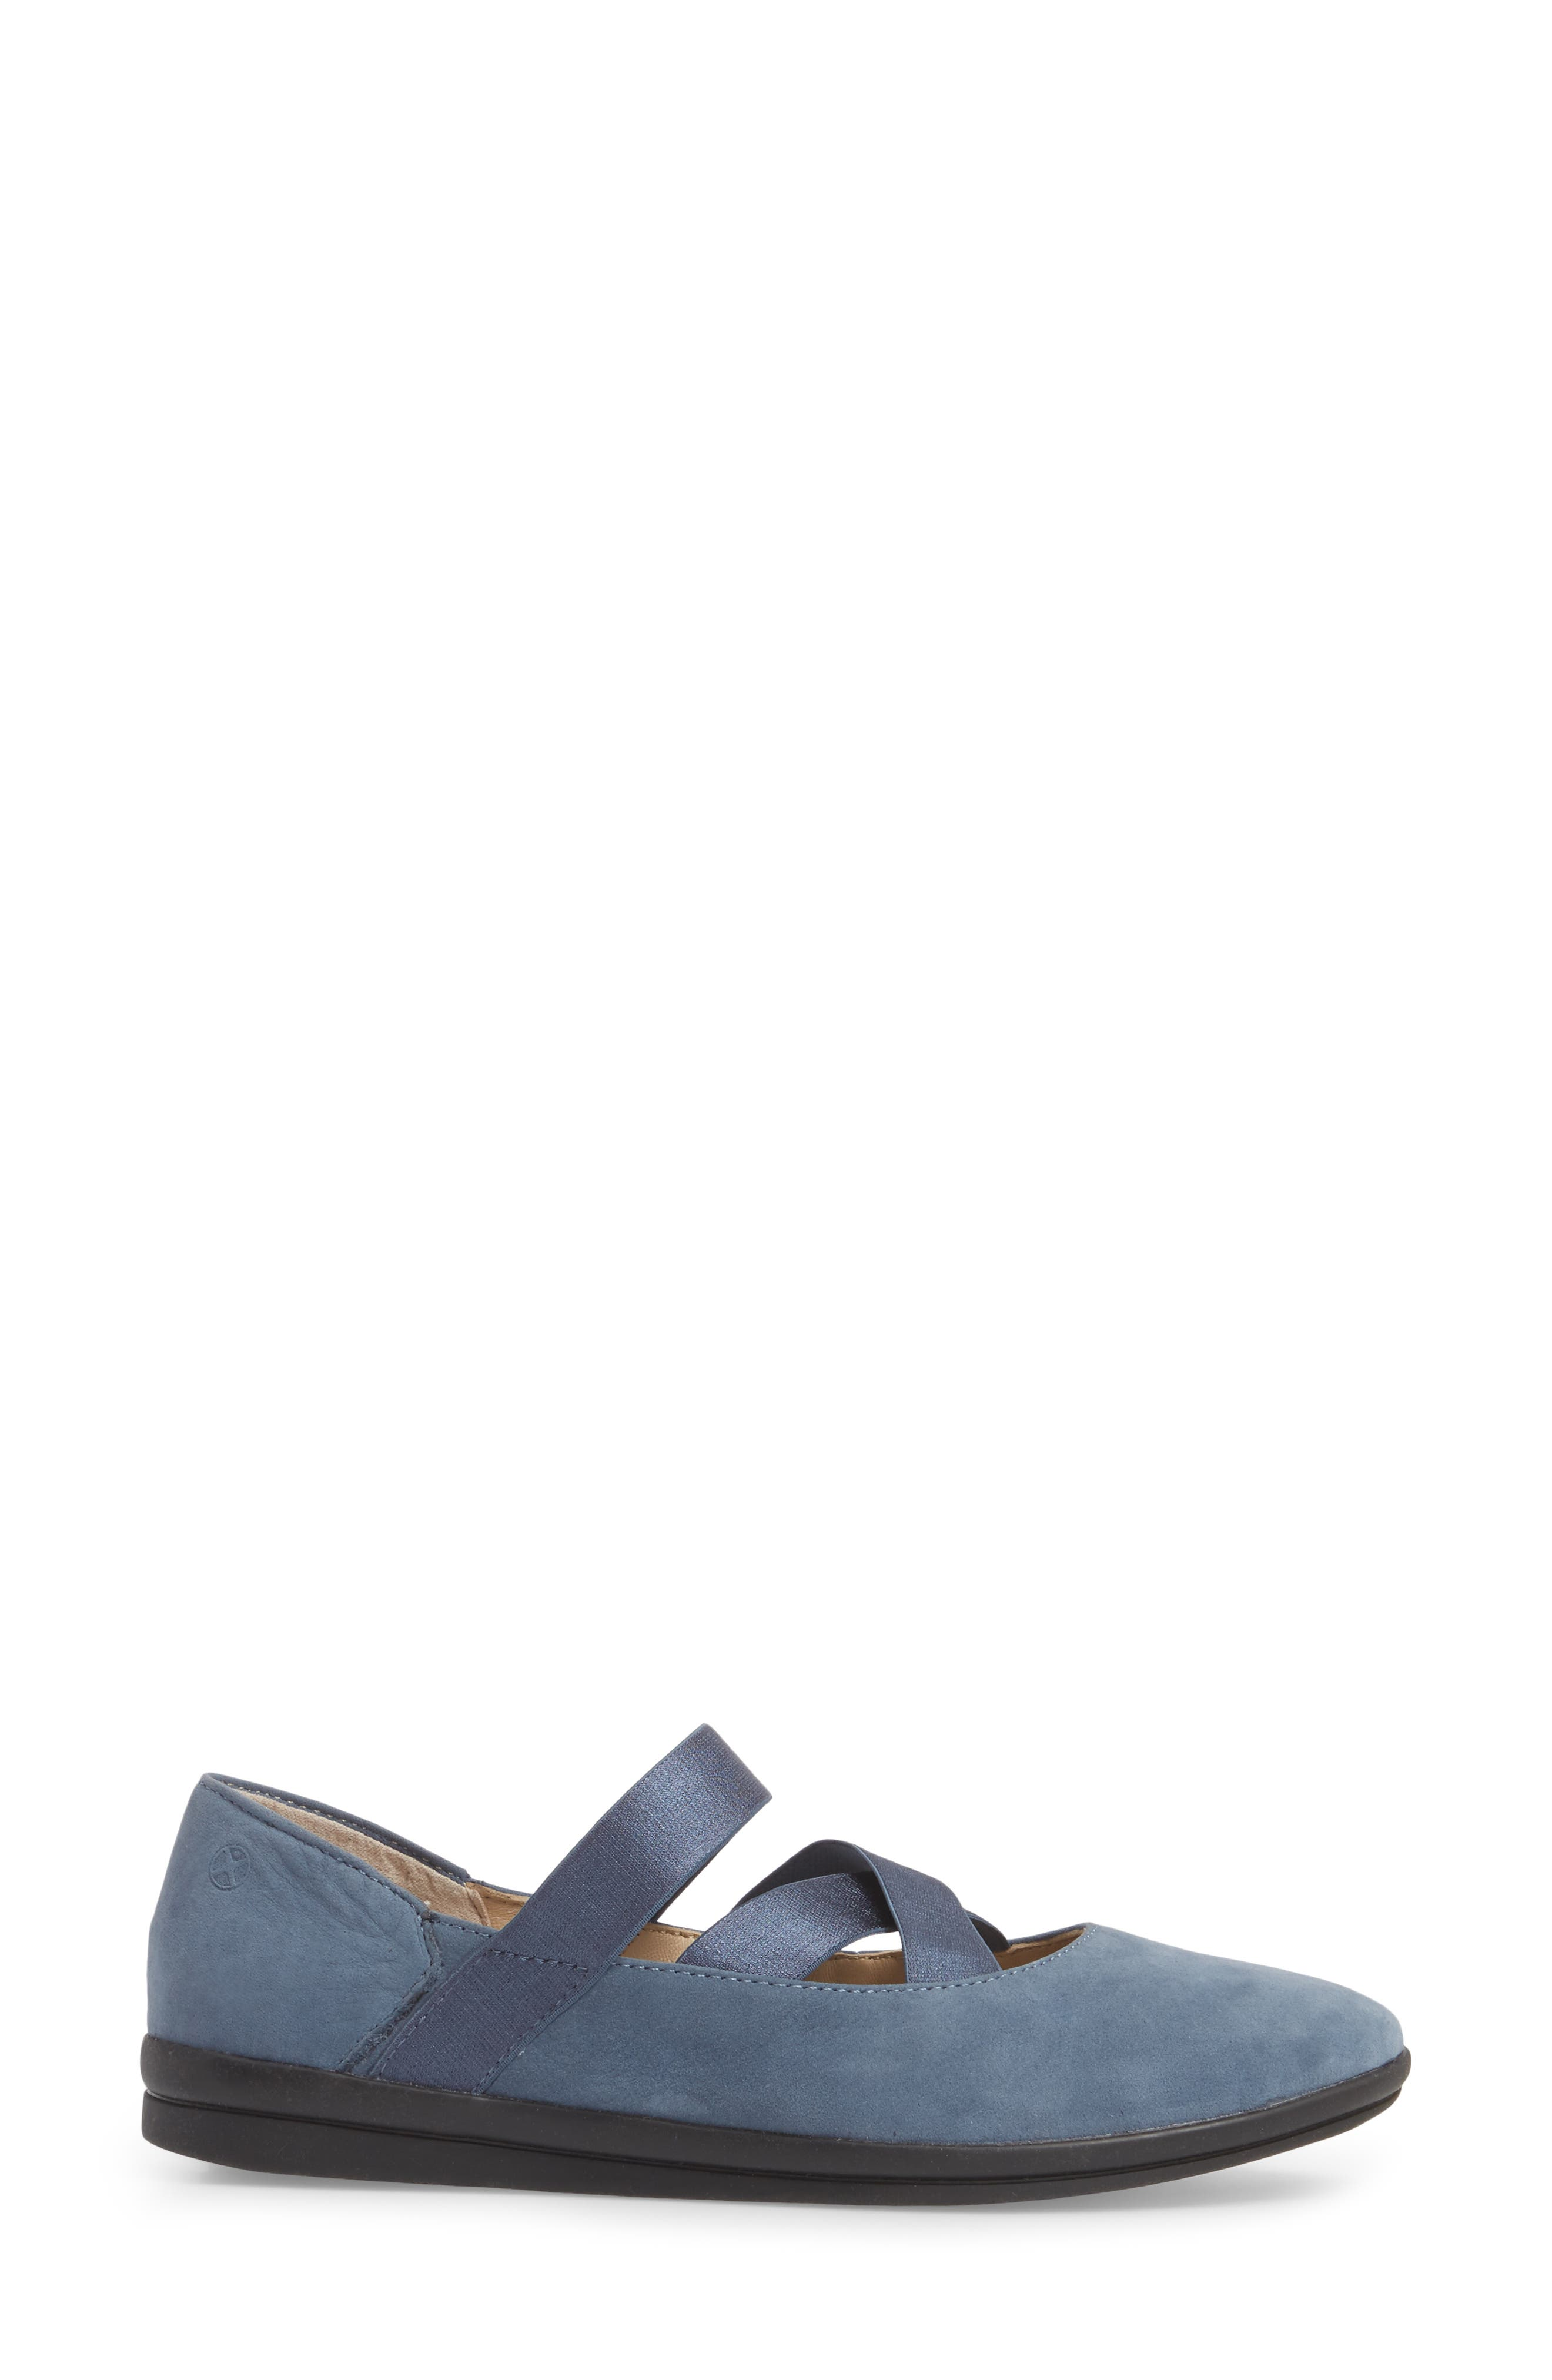 Meree Madrine Cross Strap Flat,                             Alternate thumbnail 12, color,